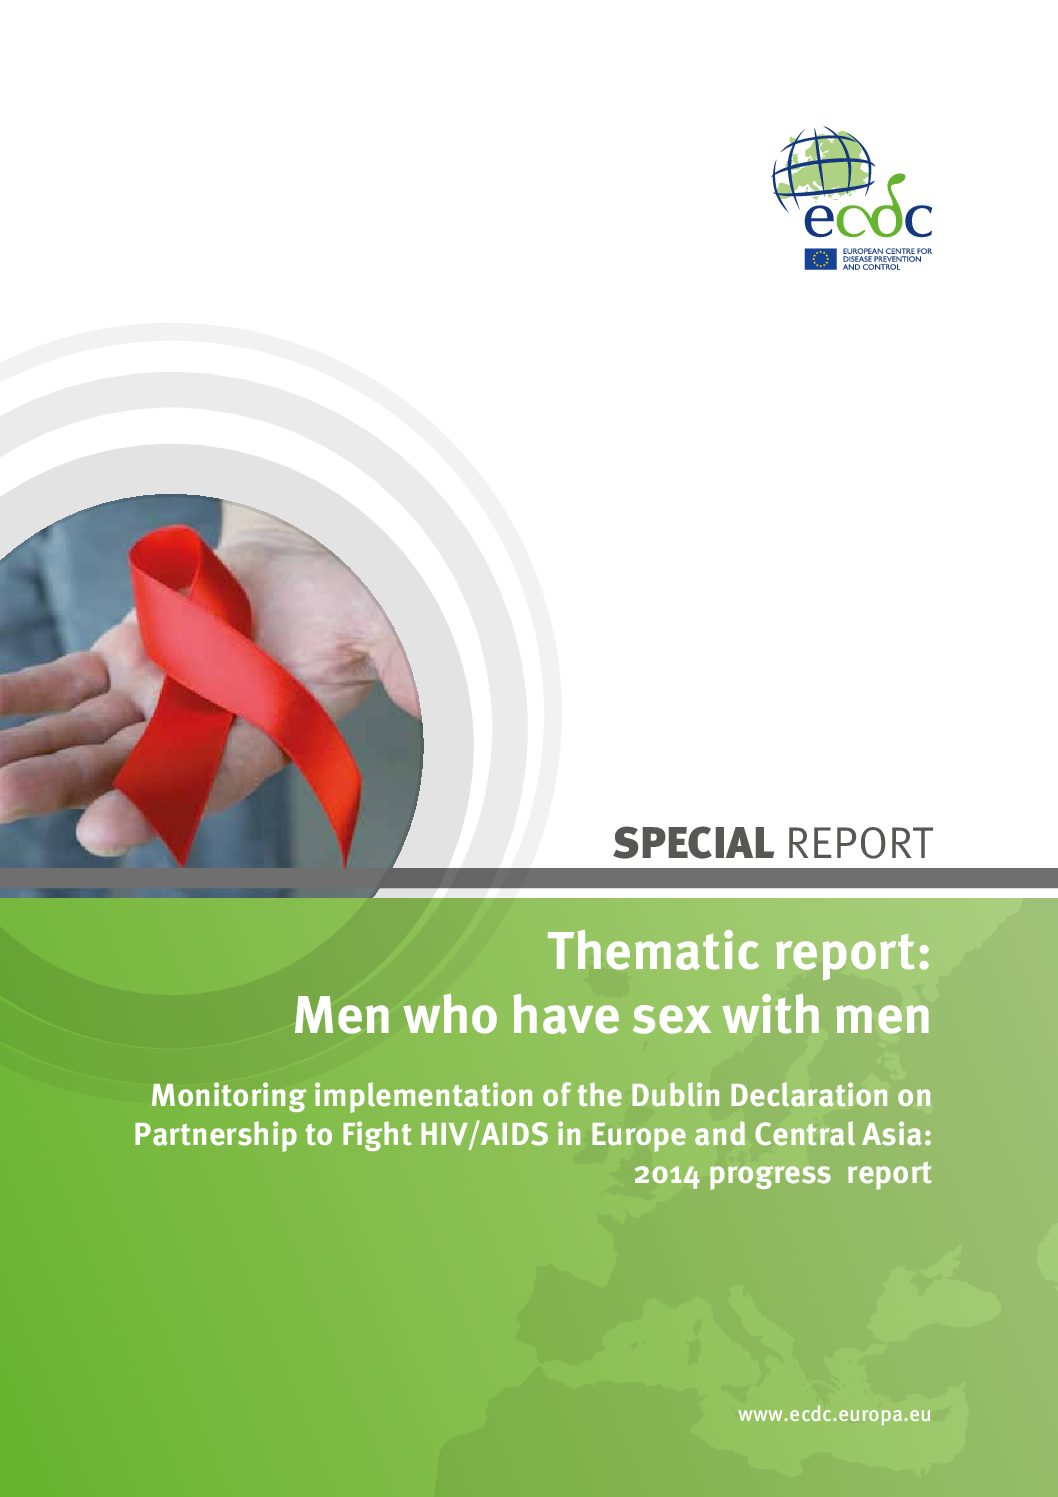 Thematic report: Men who have sex with men Monitoring implementation of the Dublin Declaration on Partnership to Fight HIV/AIDS in Europe and Central Asia: 2014 progress report